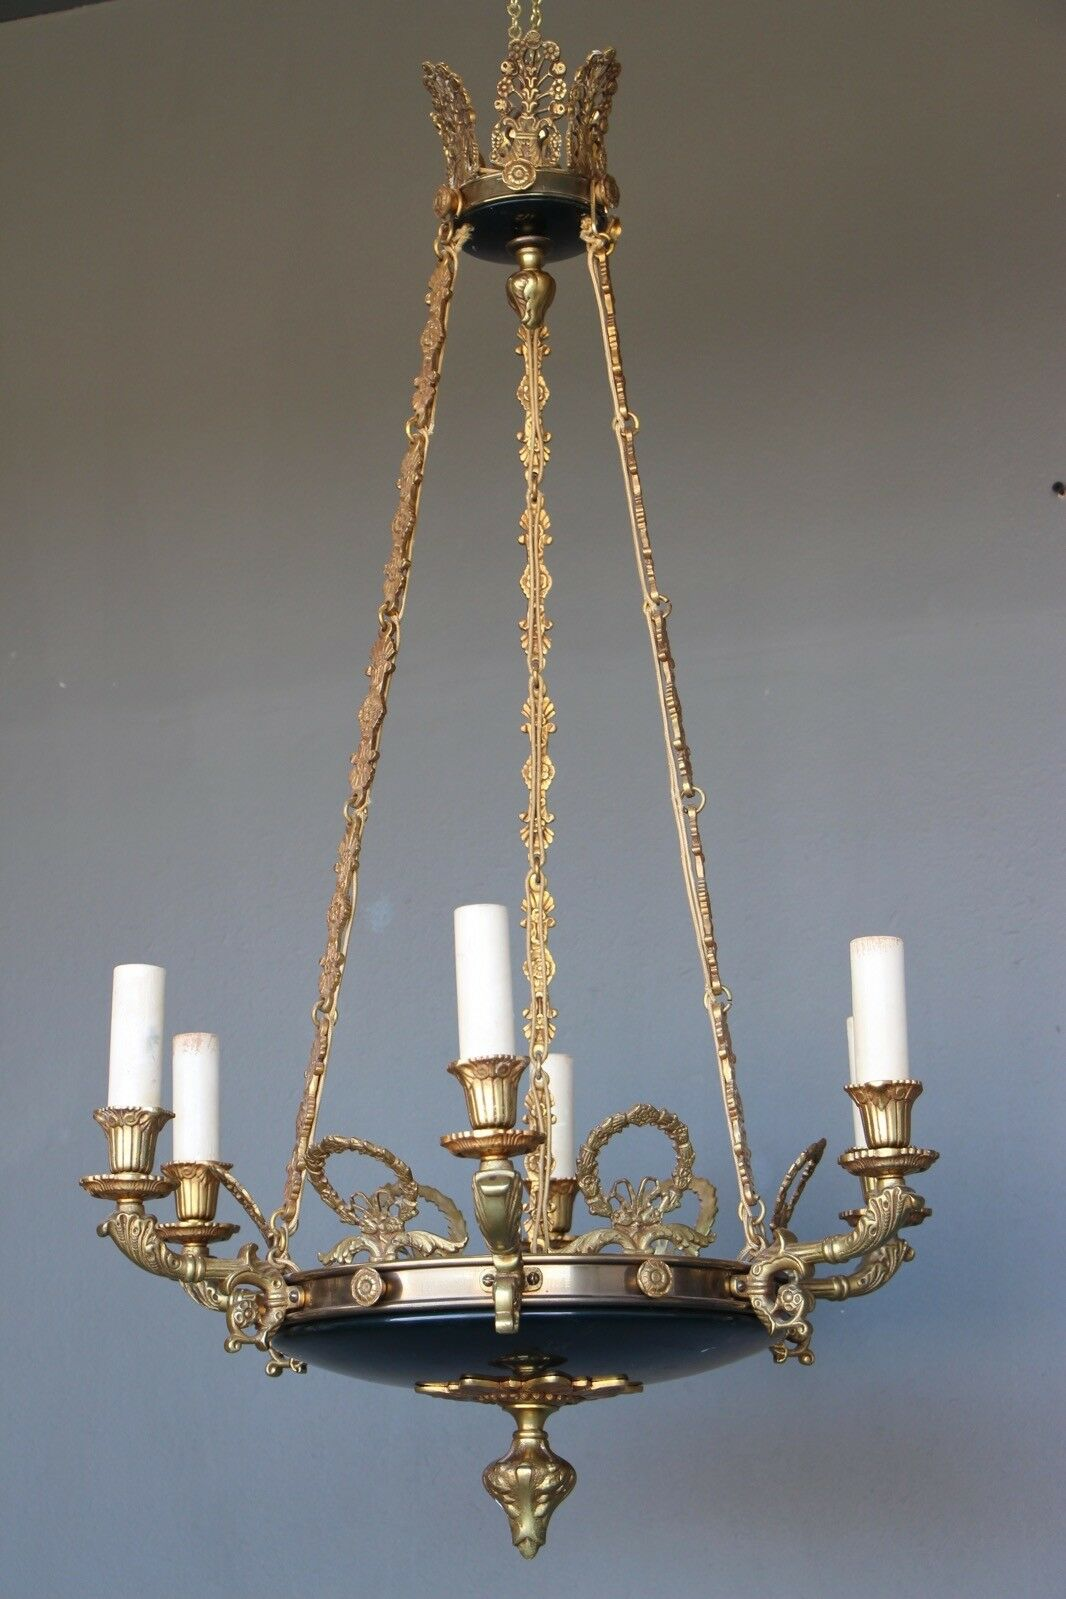 Antique French Empire dish gilt ceiling light cast bronze chandelier 6 arms 1930 3